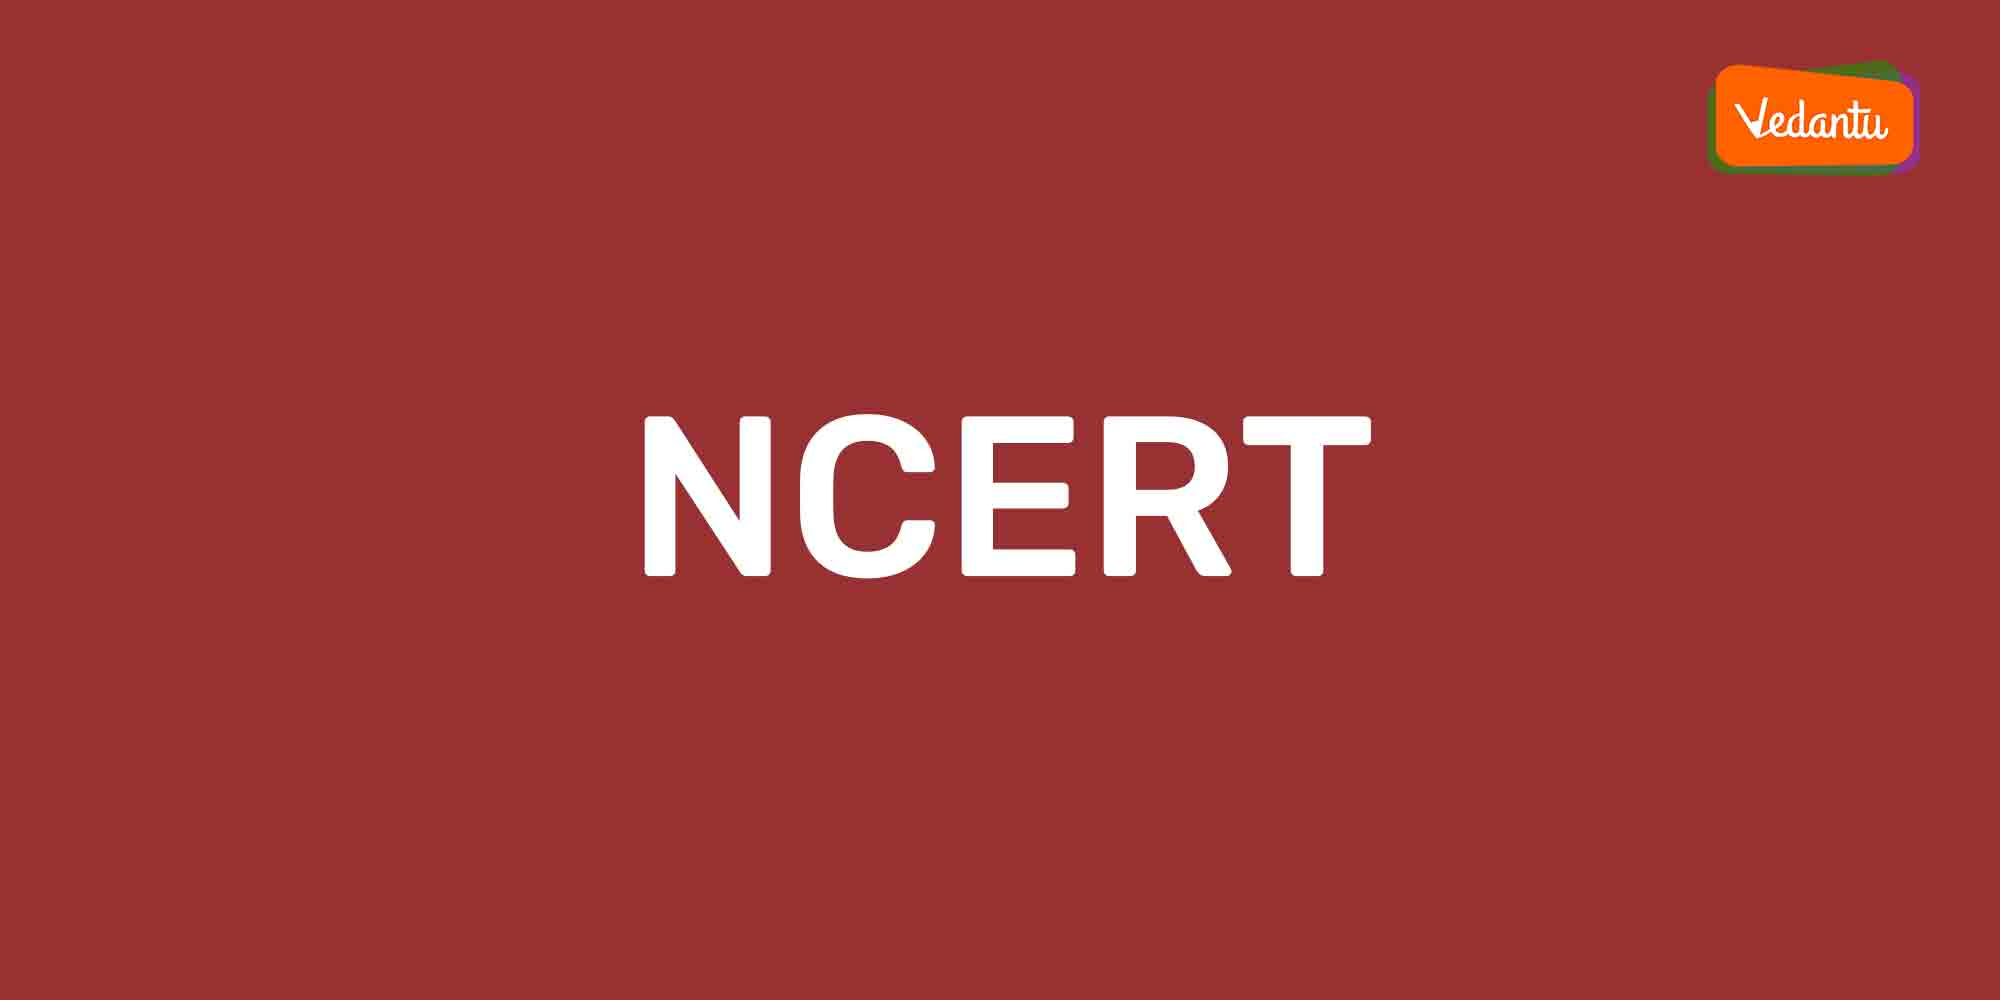 Must Read the NCERT Books Multiple Times for NEET Preparation